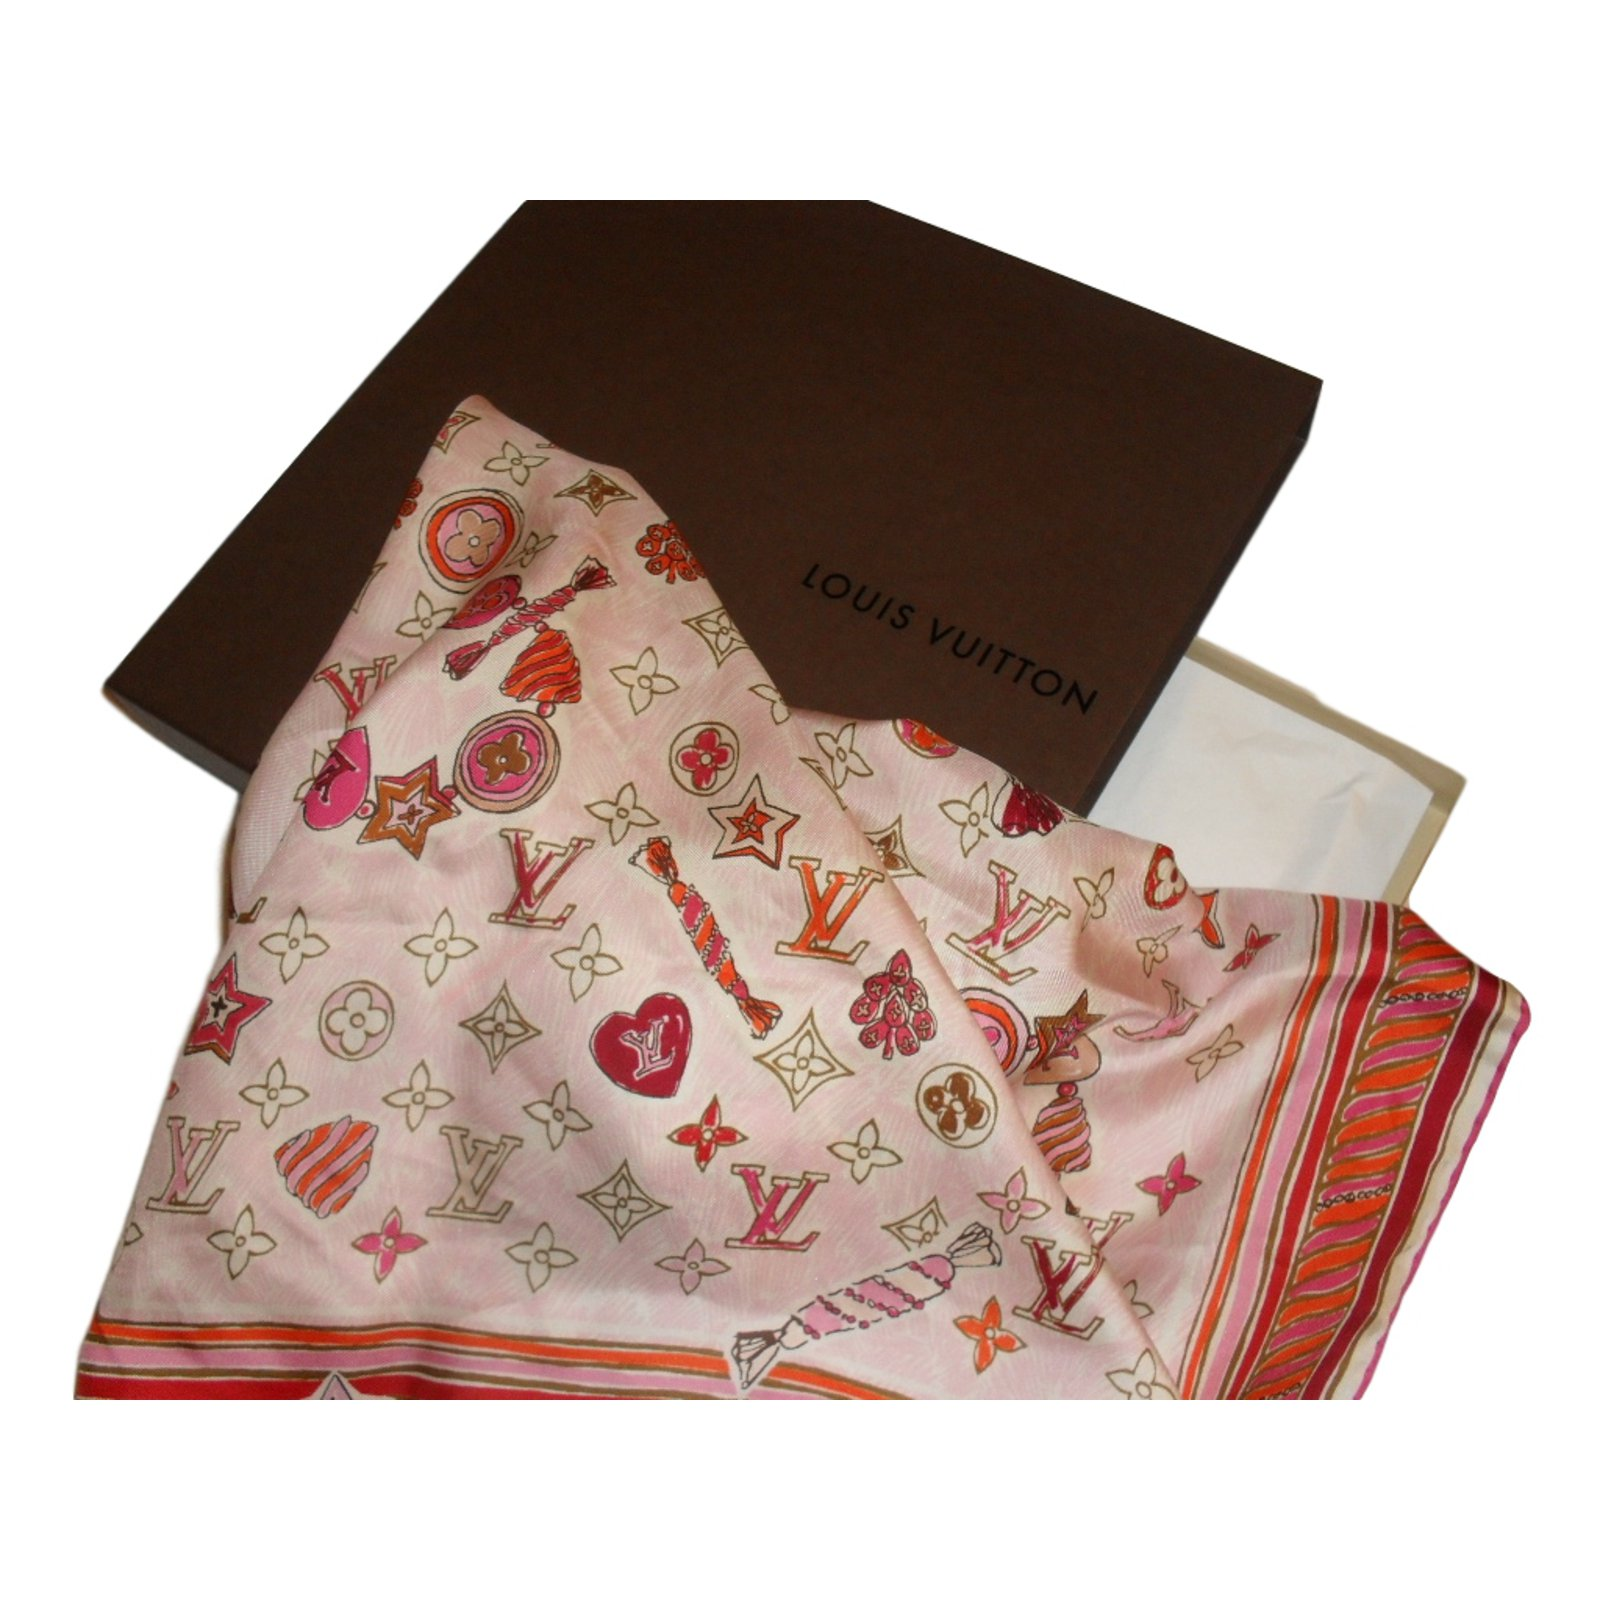 0b862184ed7a Foulards Louis Vuitton Foulard Soie Rose ref.11837 - Joli Closet